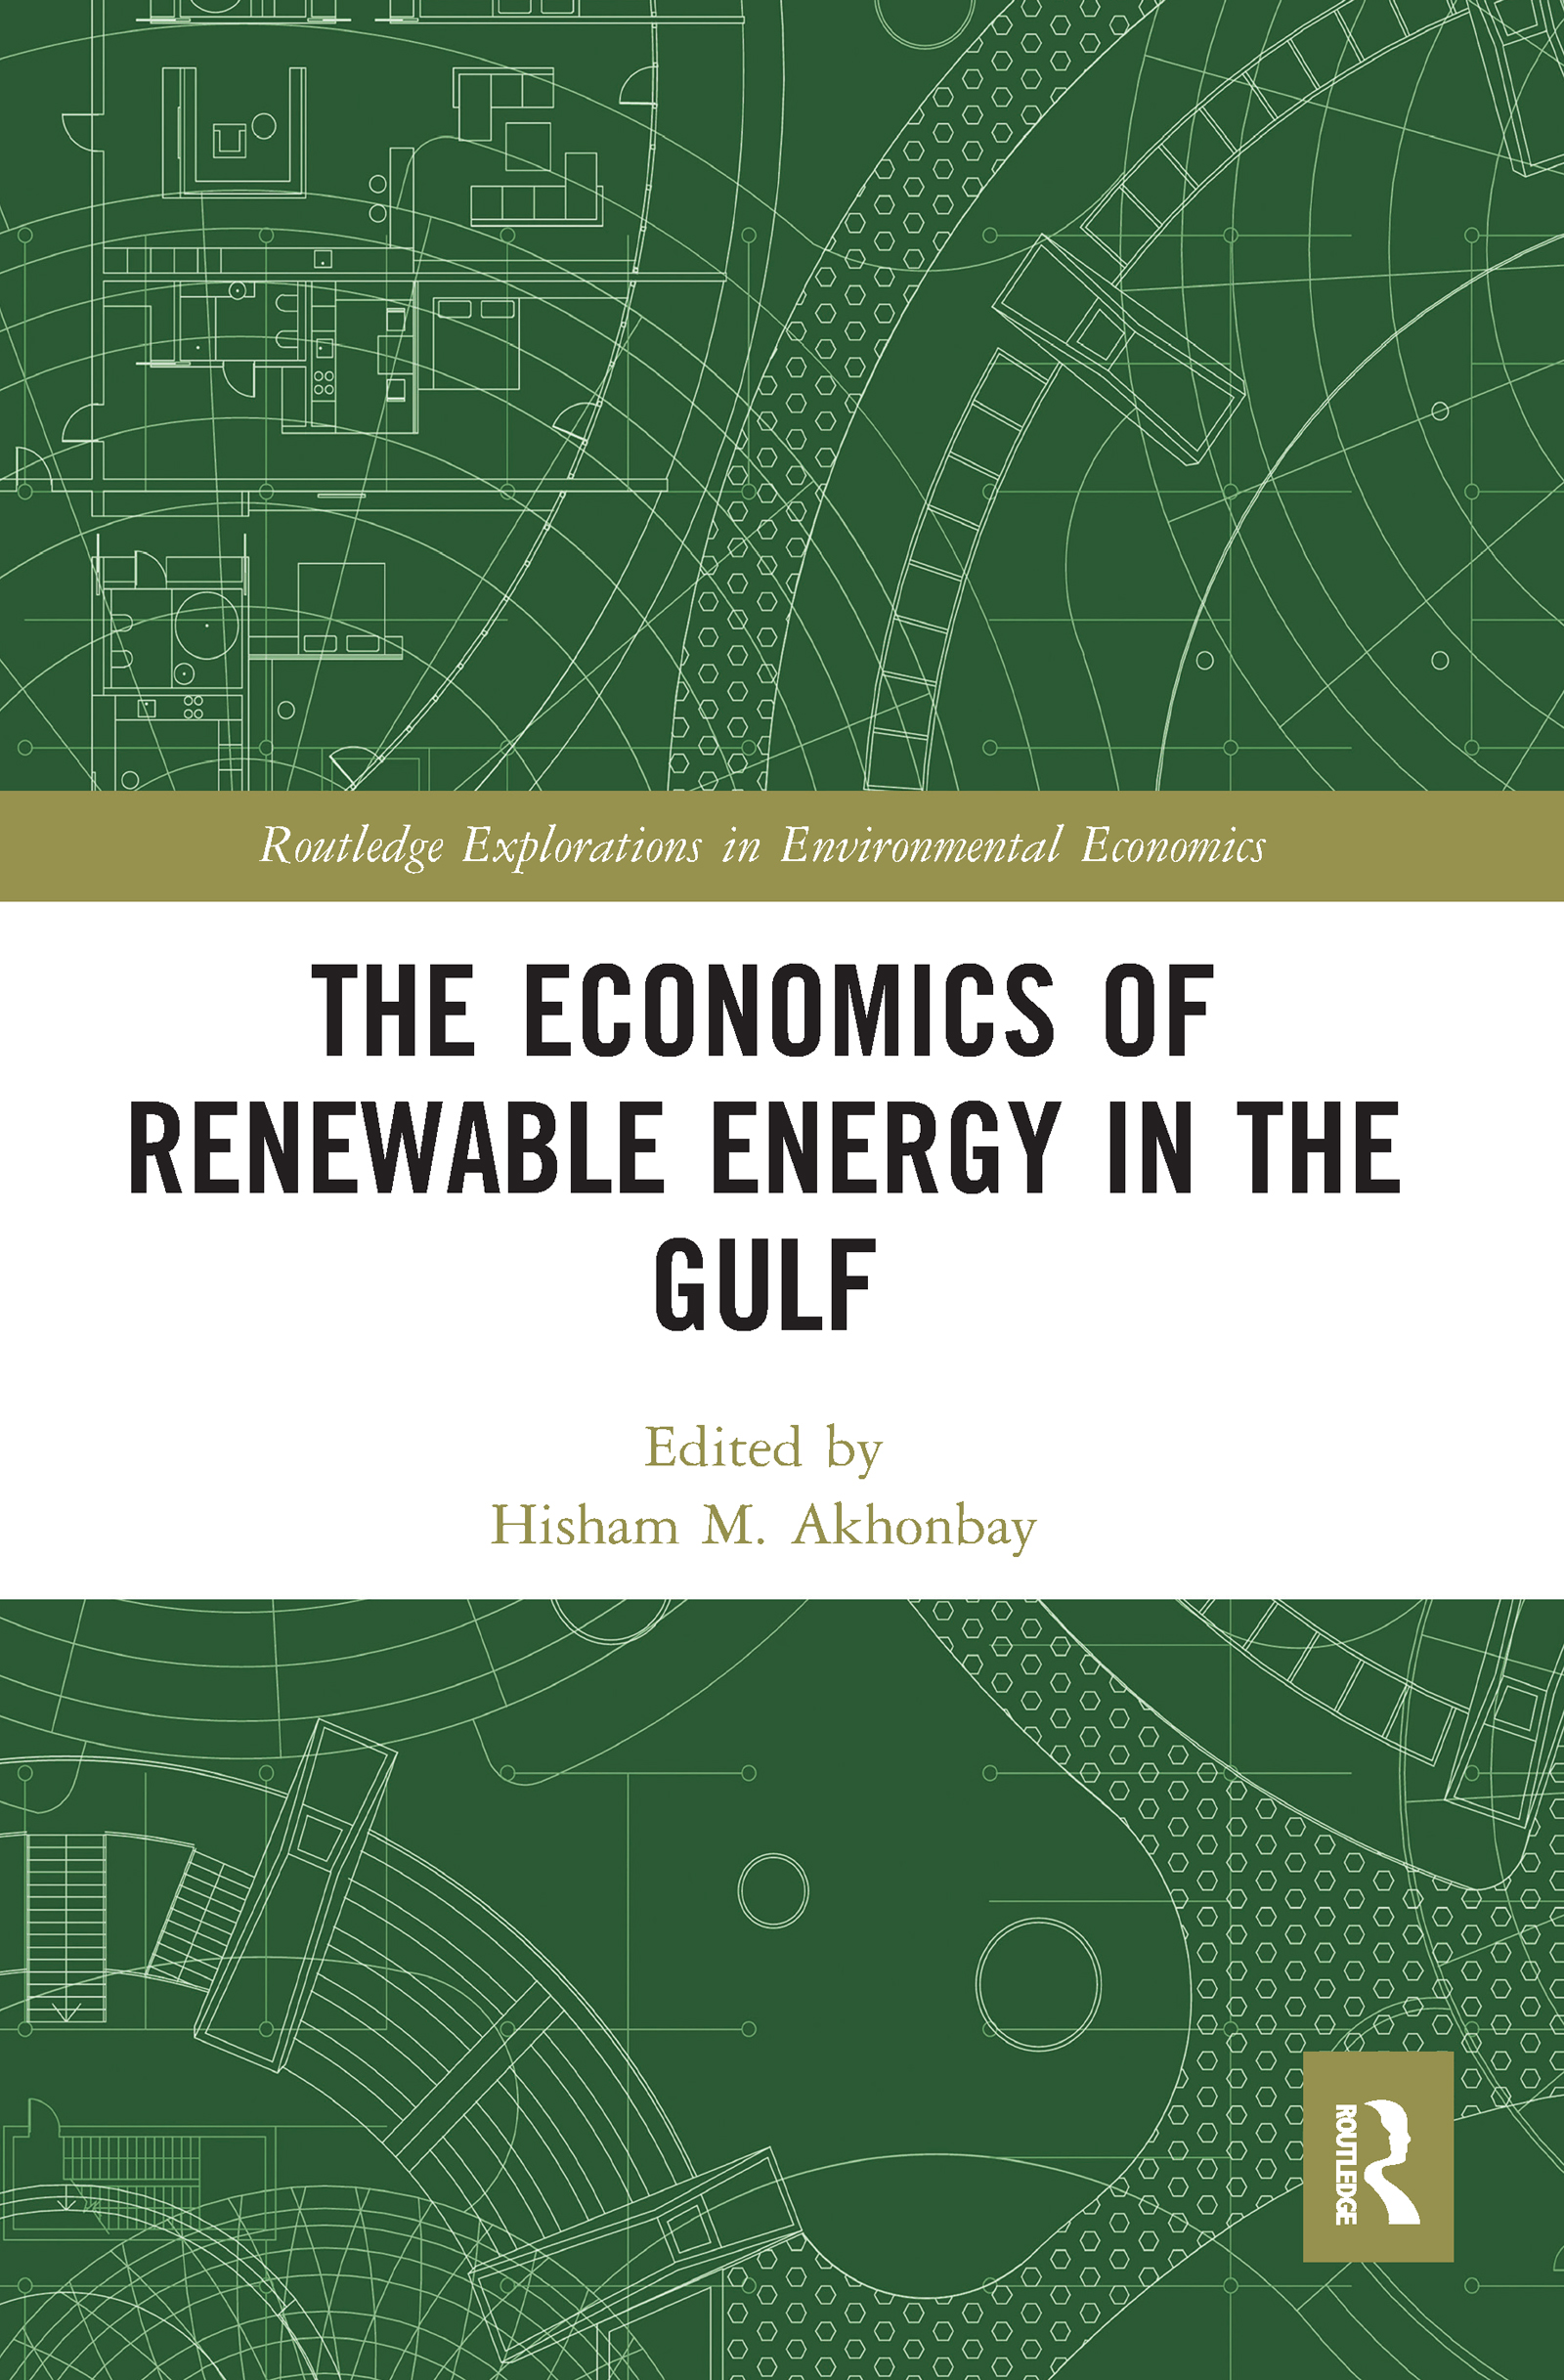 The Economics of Renewable Energy in the Gulf